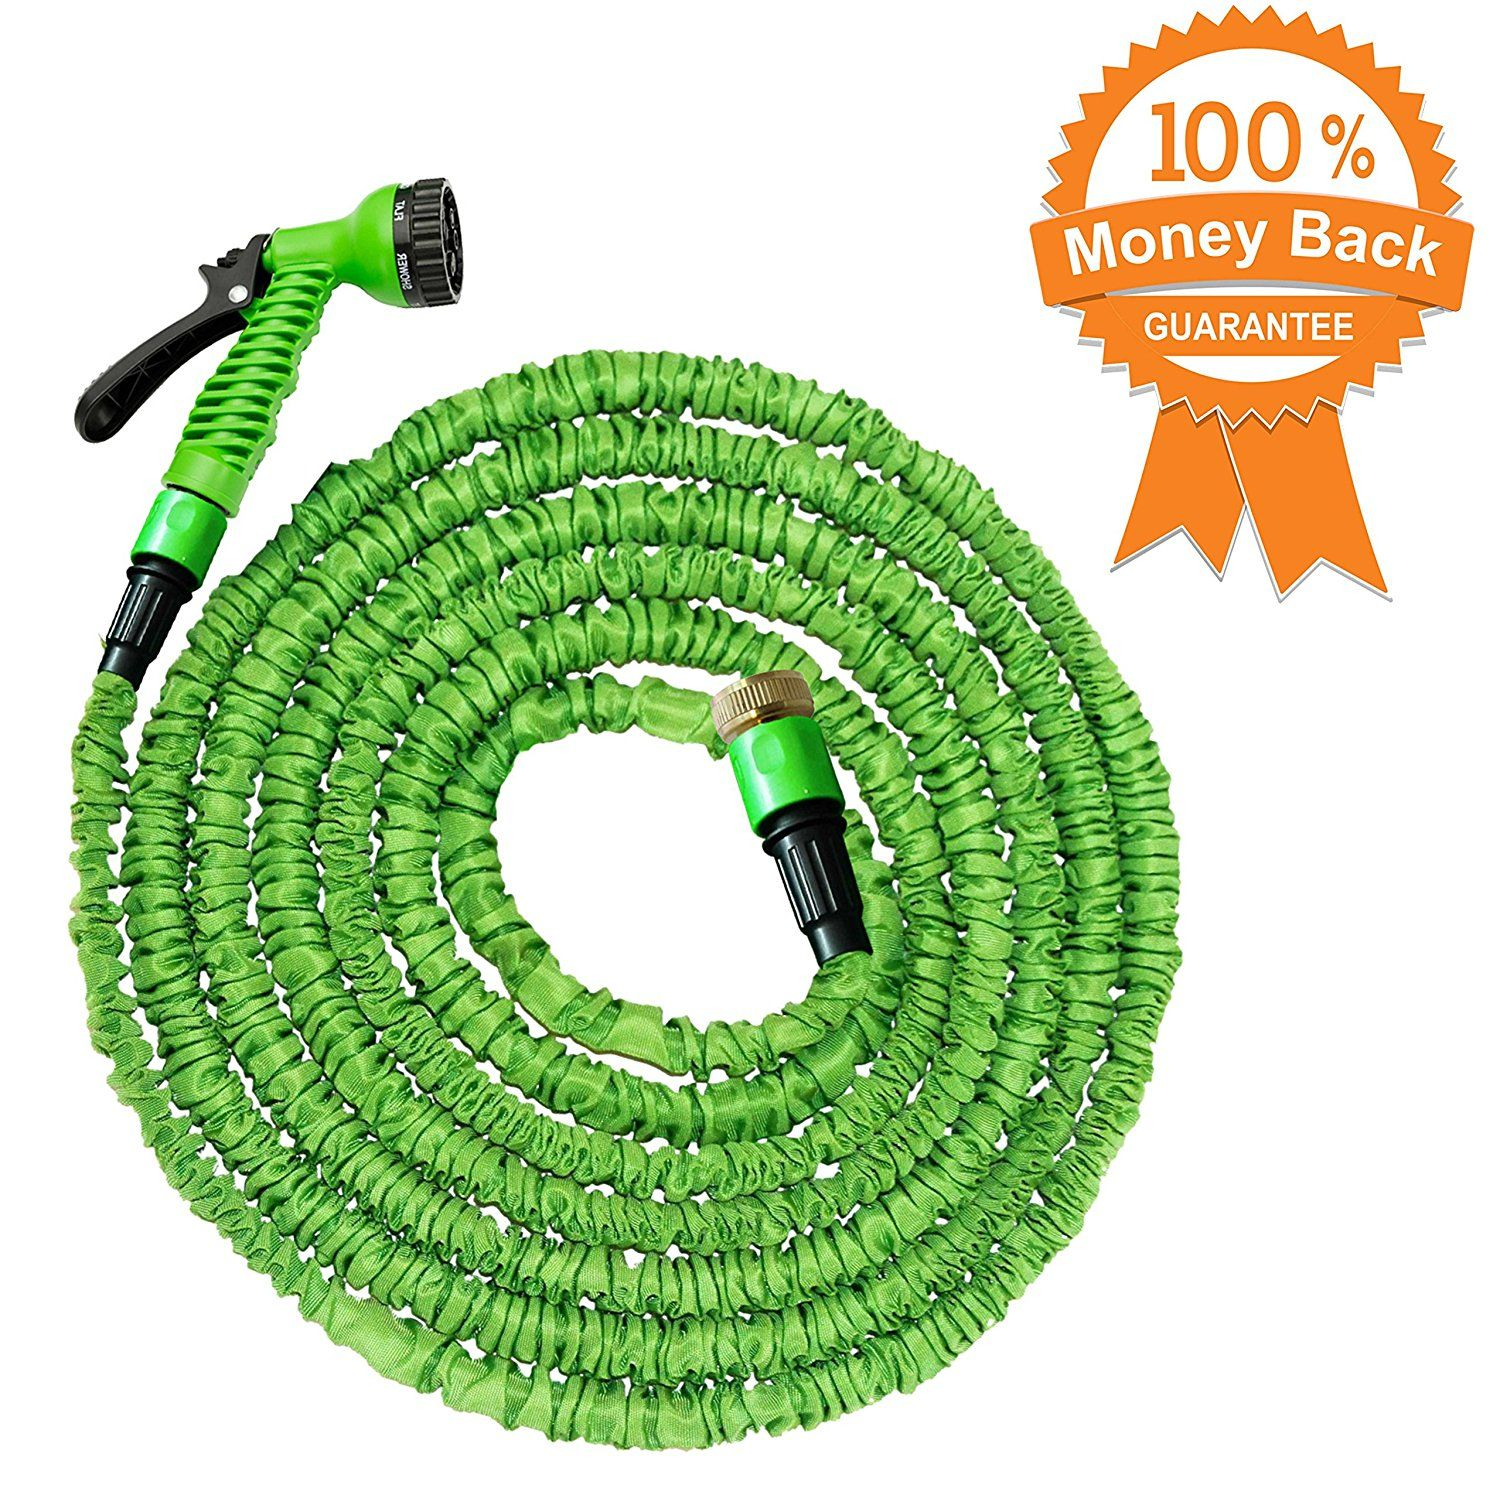 Number 2 rated garden hose